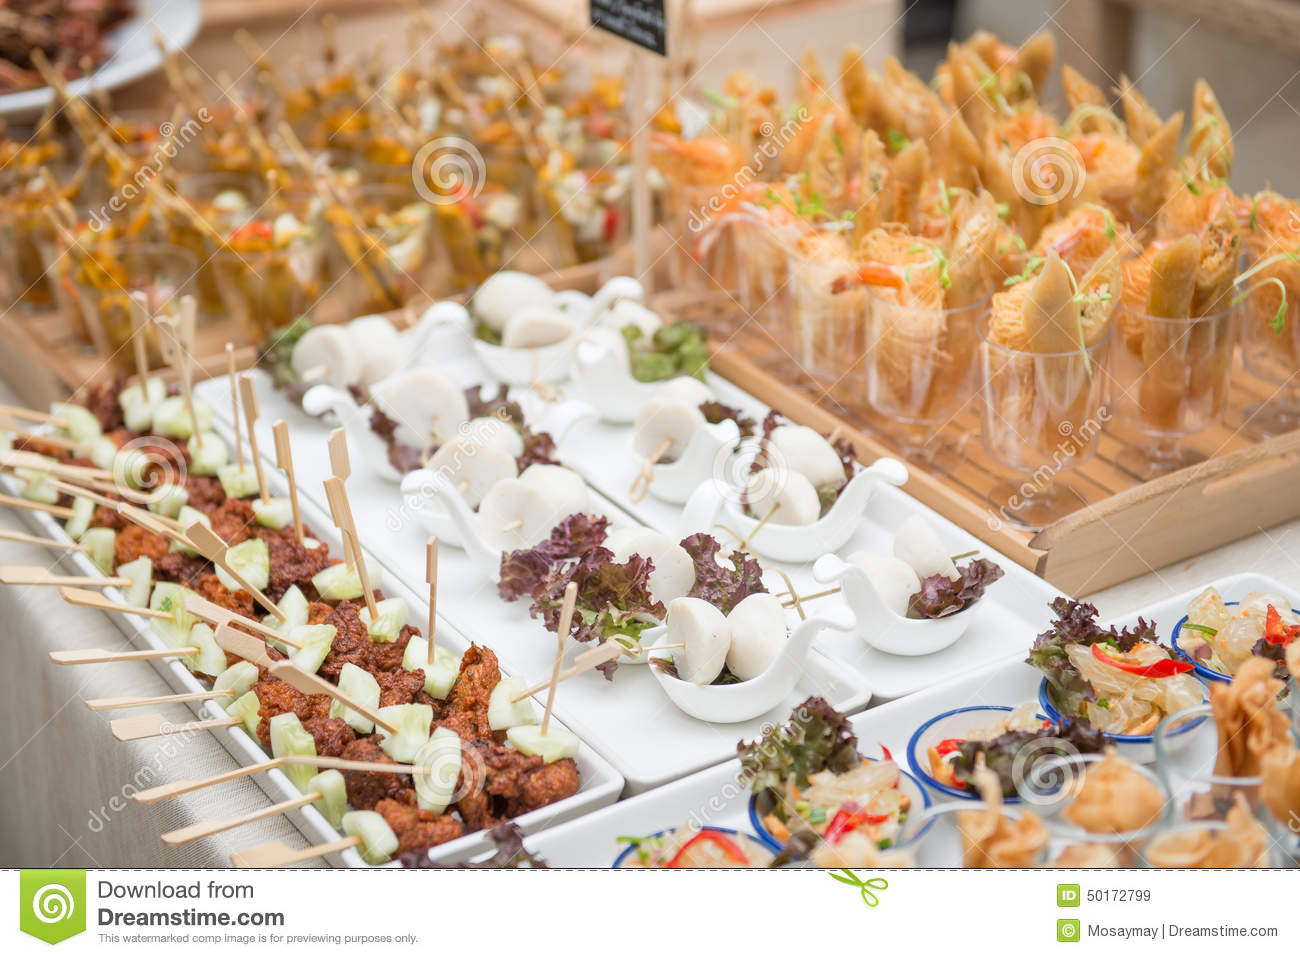 catering services Catering services if you've got a passion for food and drink there could be something here for you whether you want to sell, cook, serve food or serve drinks.